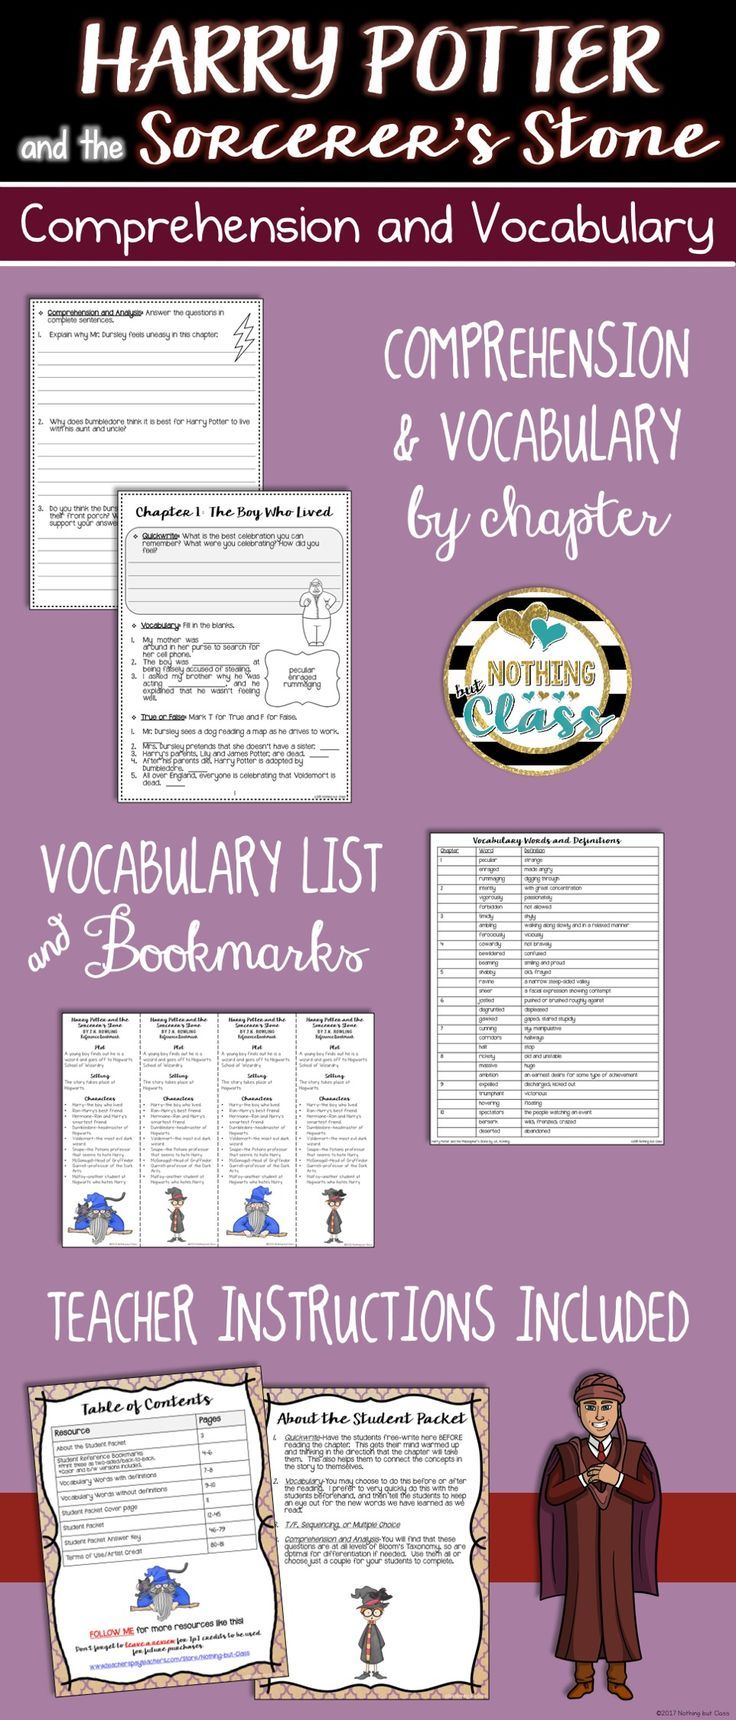 This Is A 78 Page Chapter By Chapter Guide For Harry Potter And The Sorcerer S Stone Or Harry Pott Harry Potter Activities Harry Potter Classroom Harry Potter